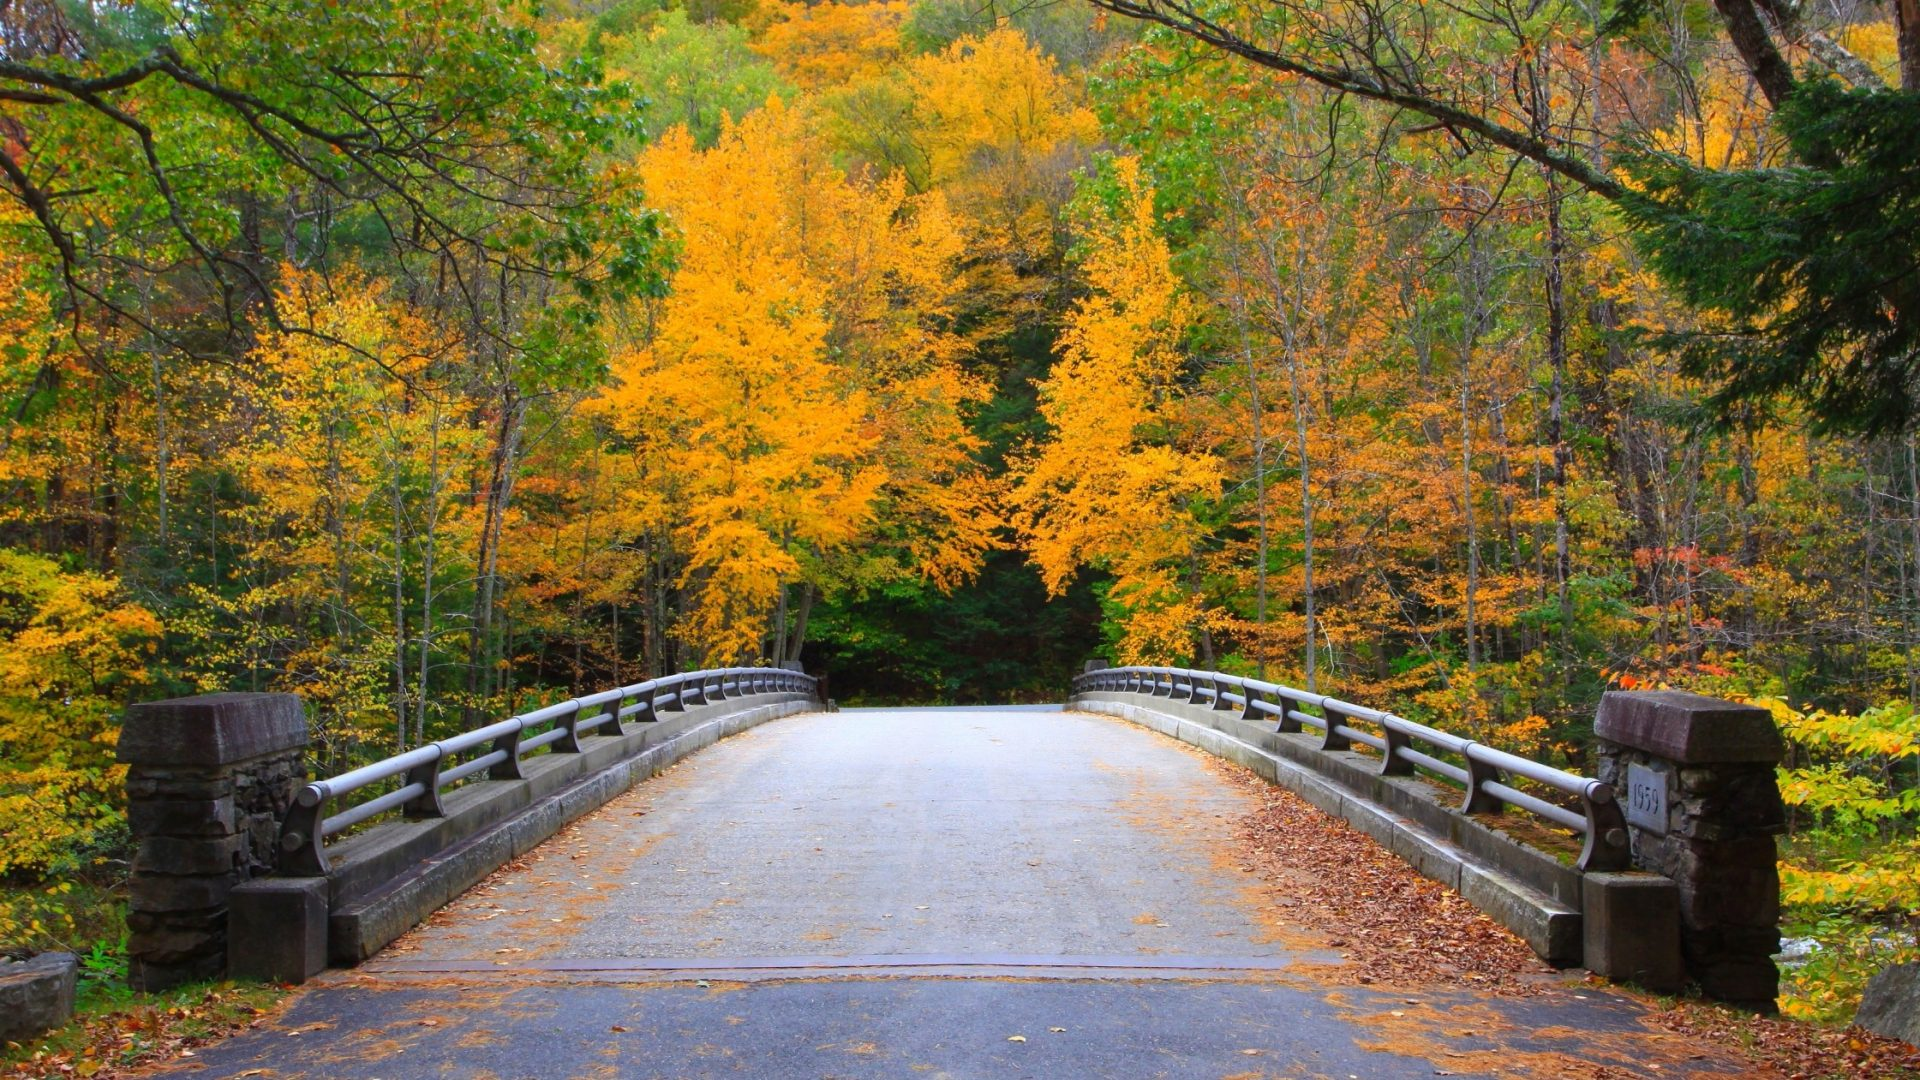 Bridge Massachusetts Colorful Autumn Trees Nature Forest